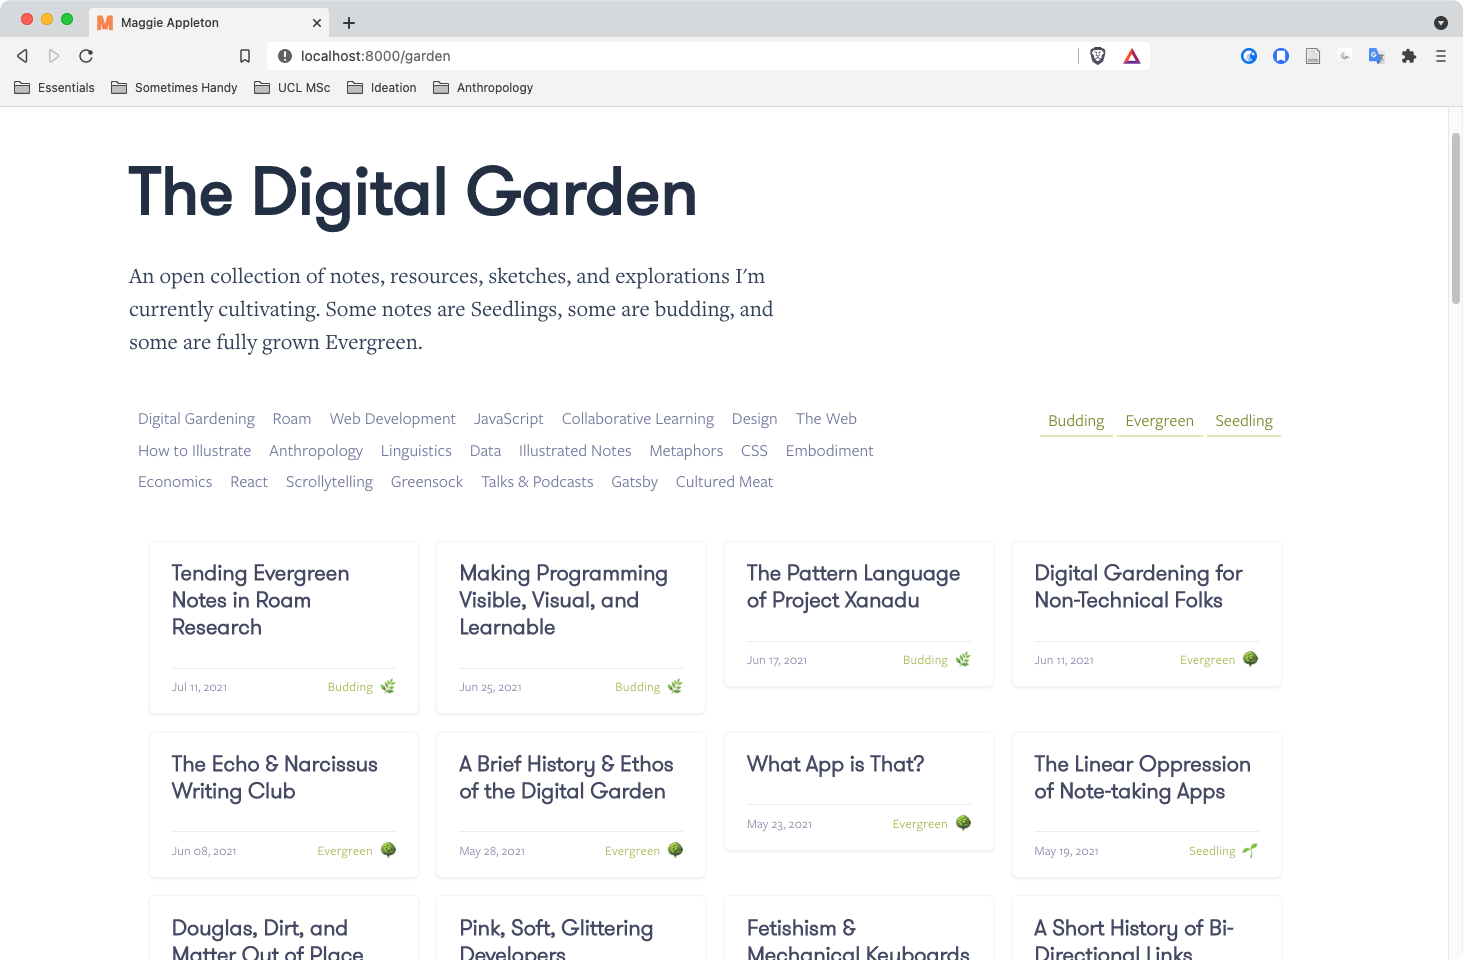 A screenshot of this website rendered in a browser